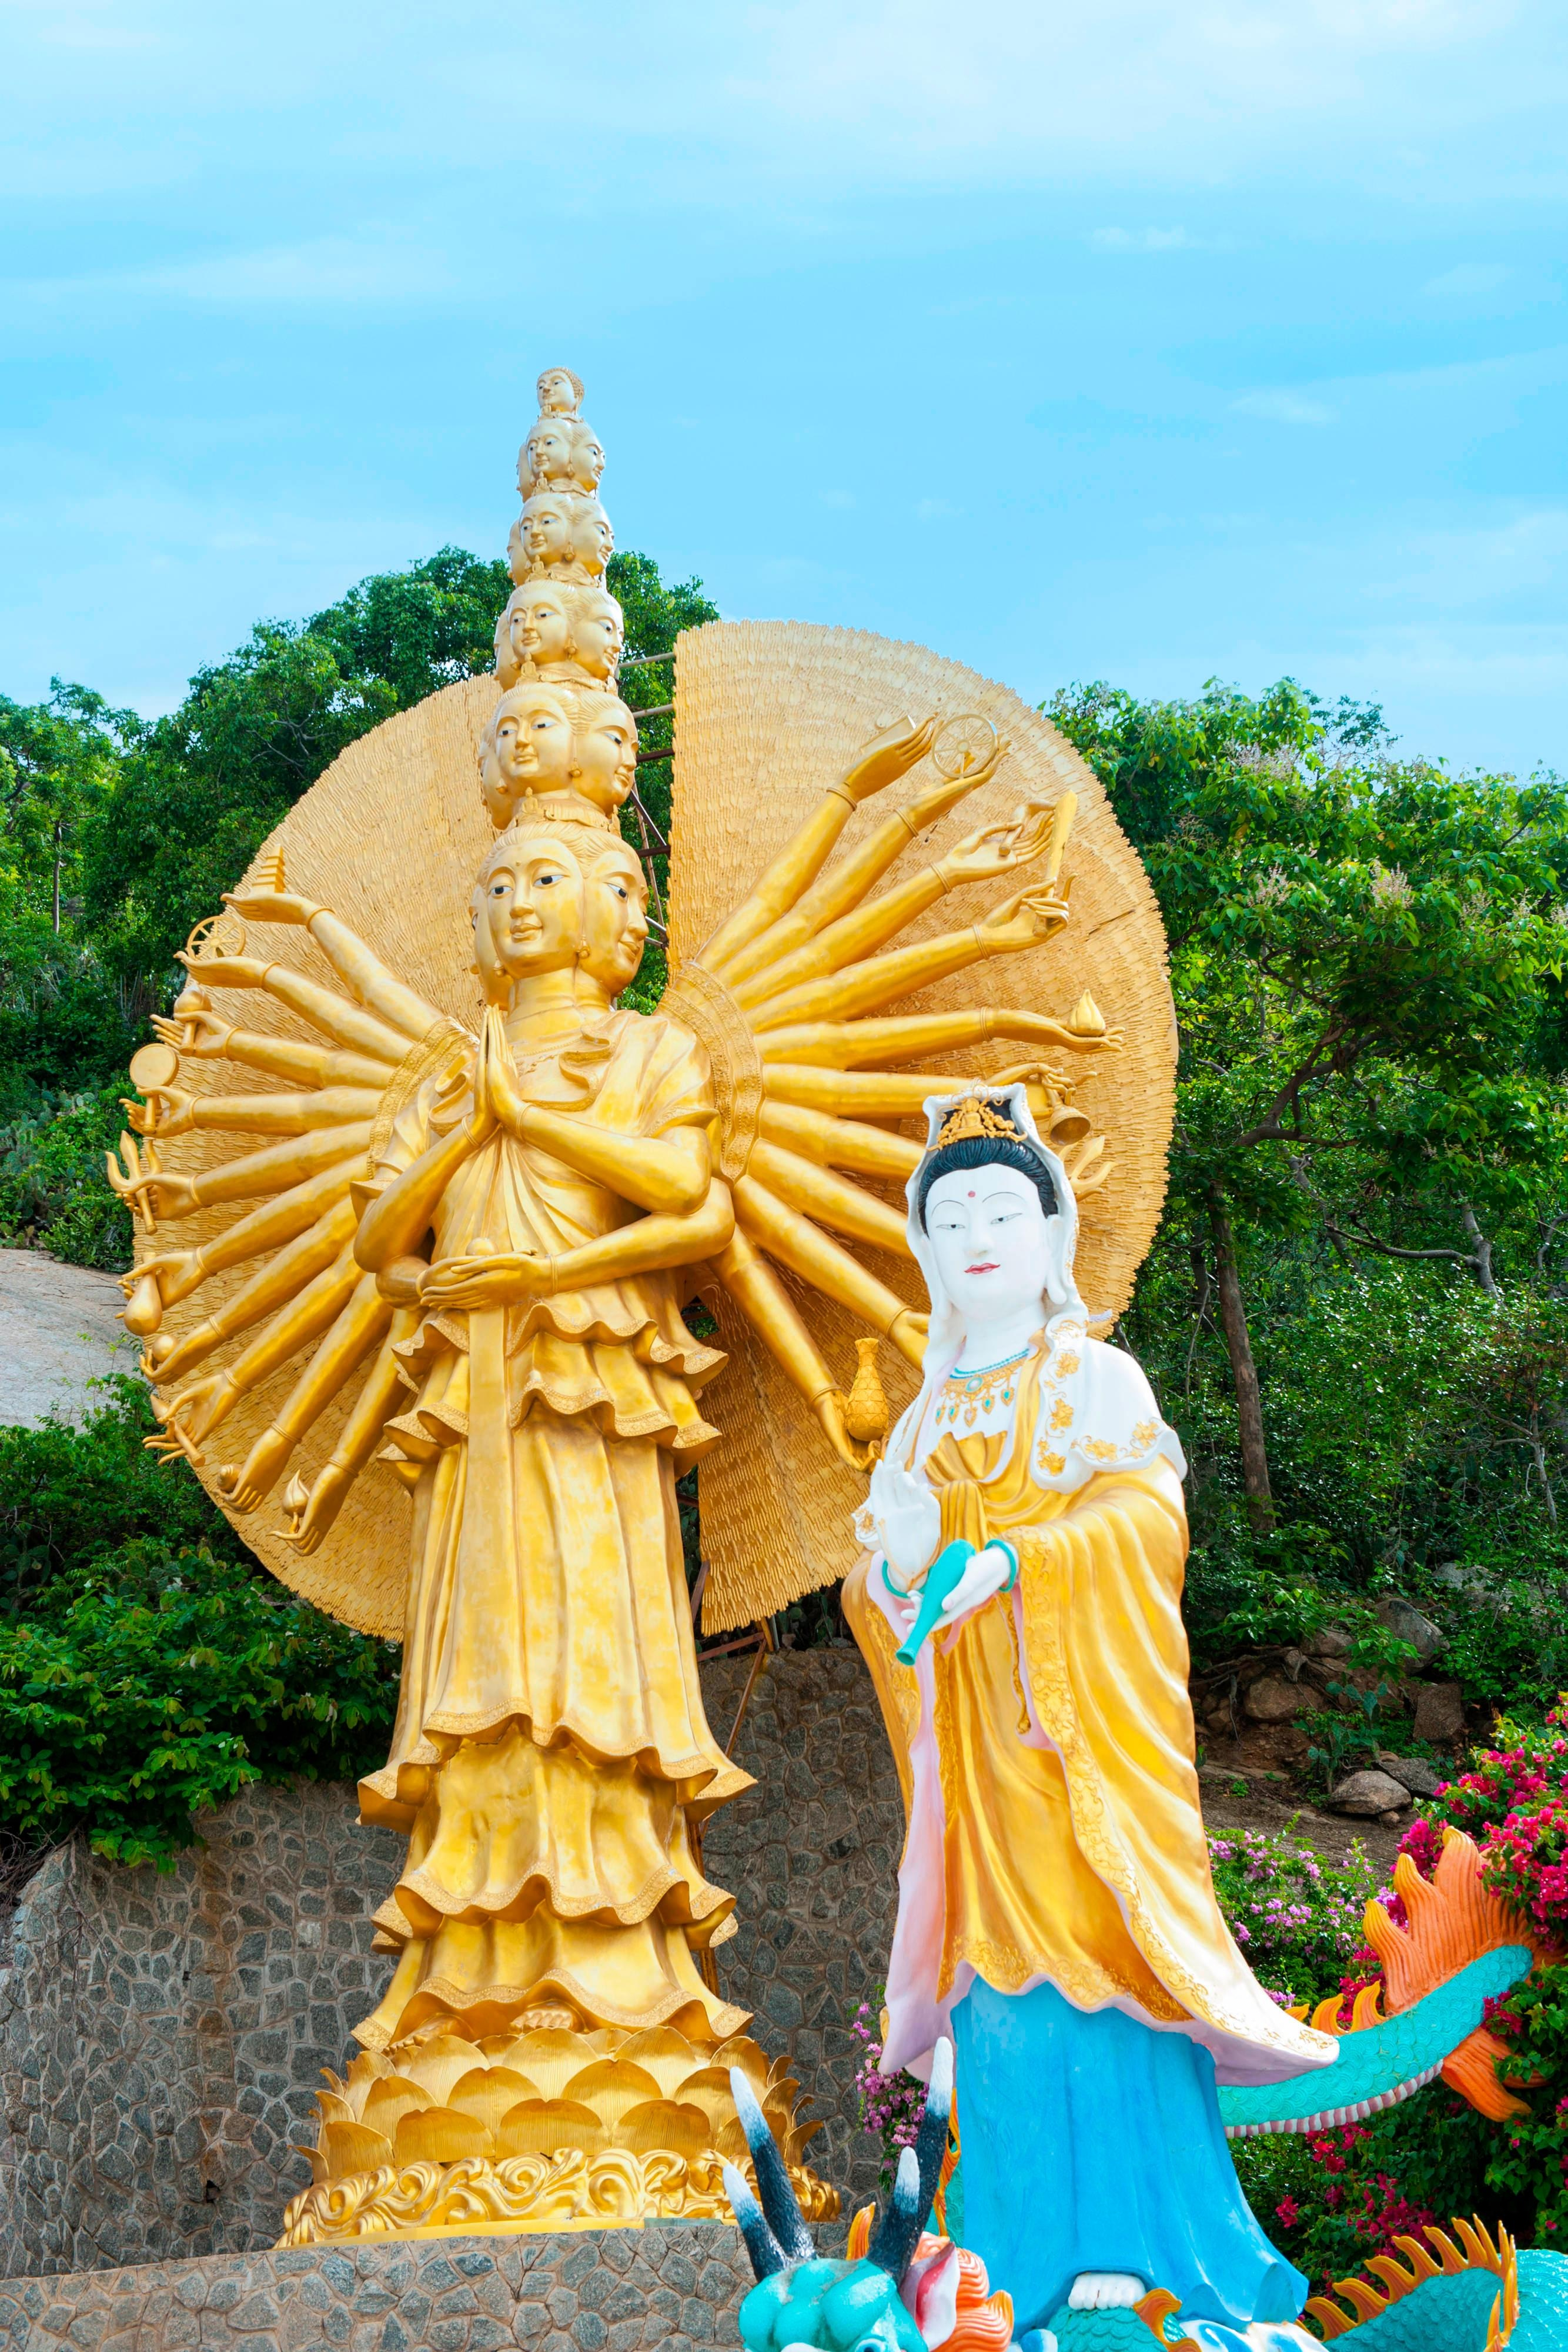 Thousand Armed Buddhist Goddess Guan Yin at Khao Takiab Temple